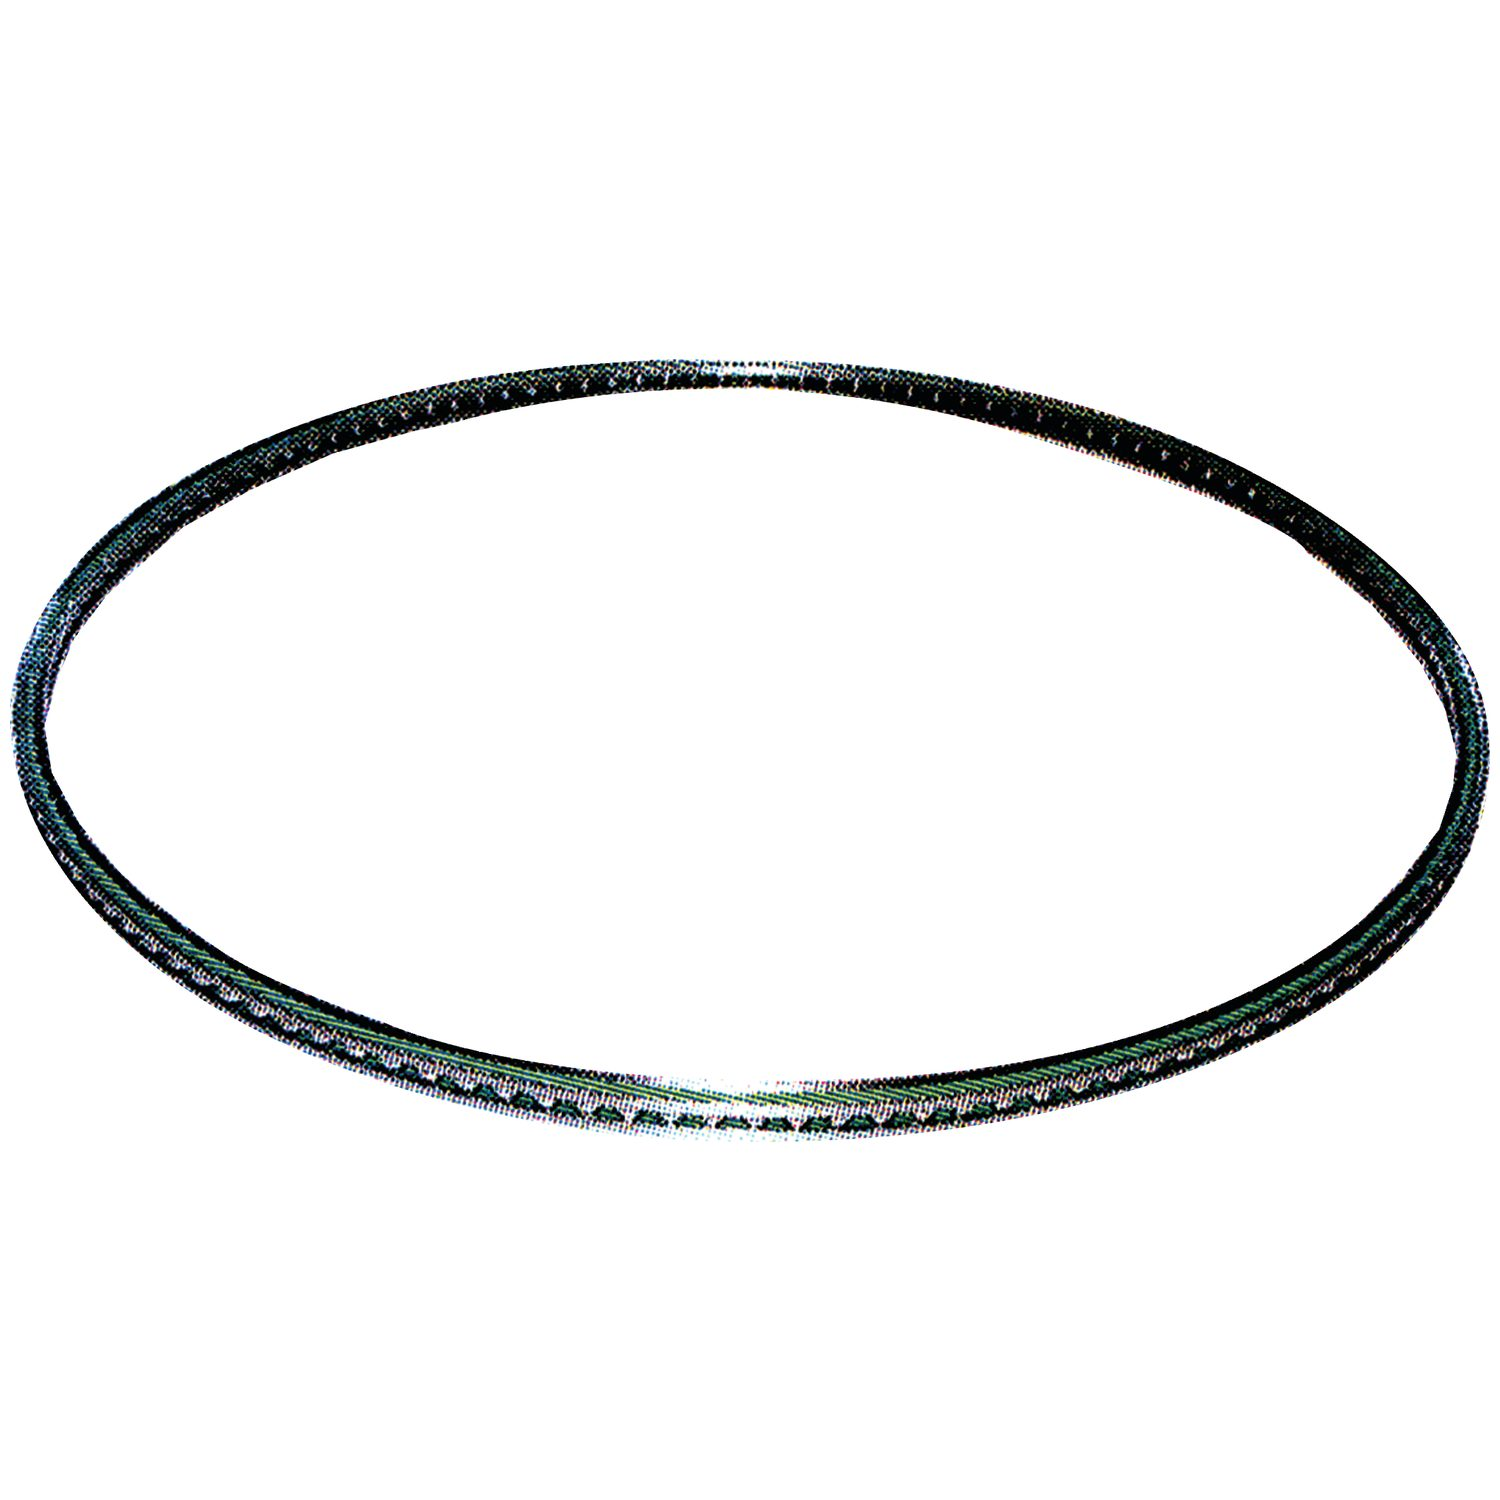 R4230.1 - Ball Bearing - Wire, Duo Profile